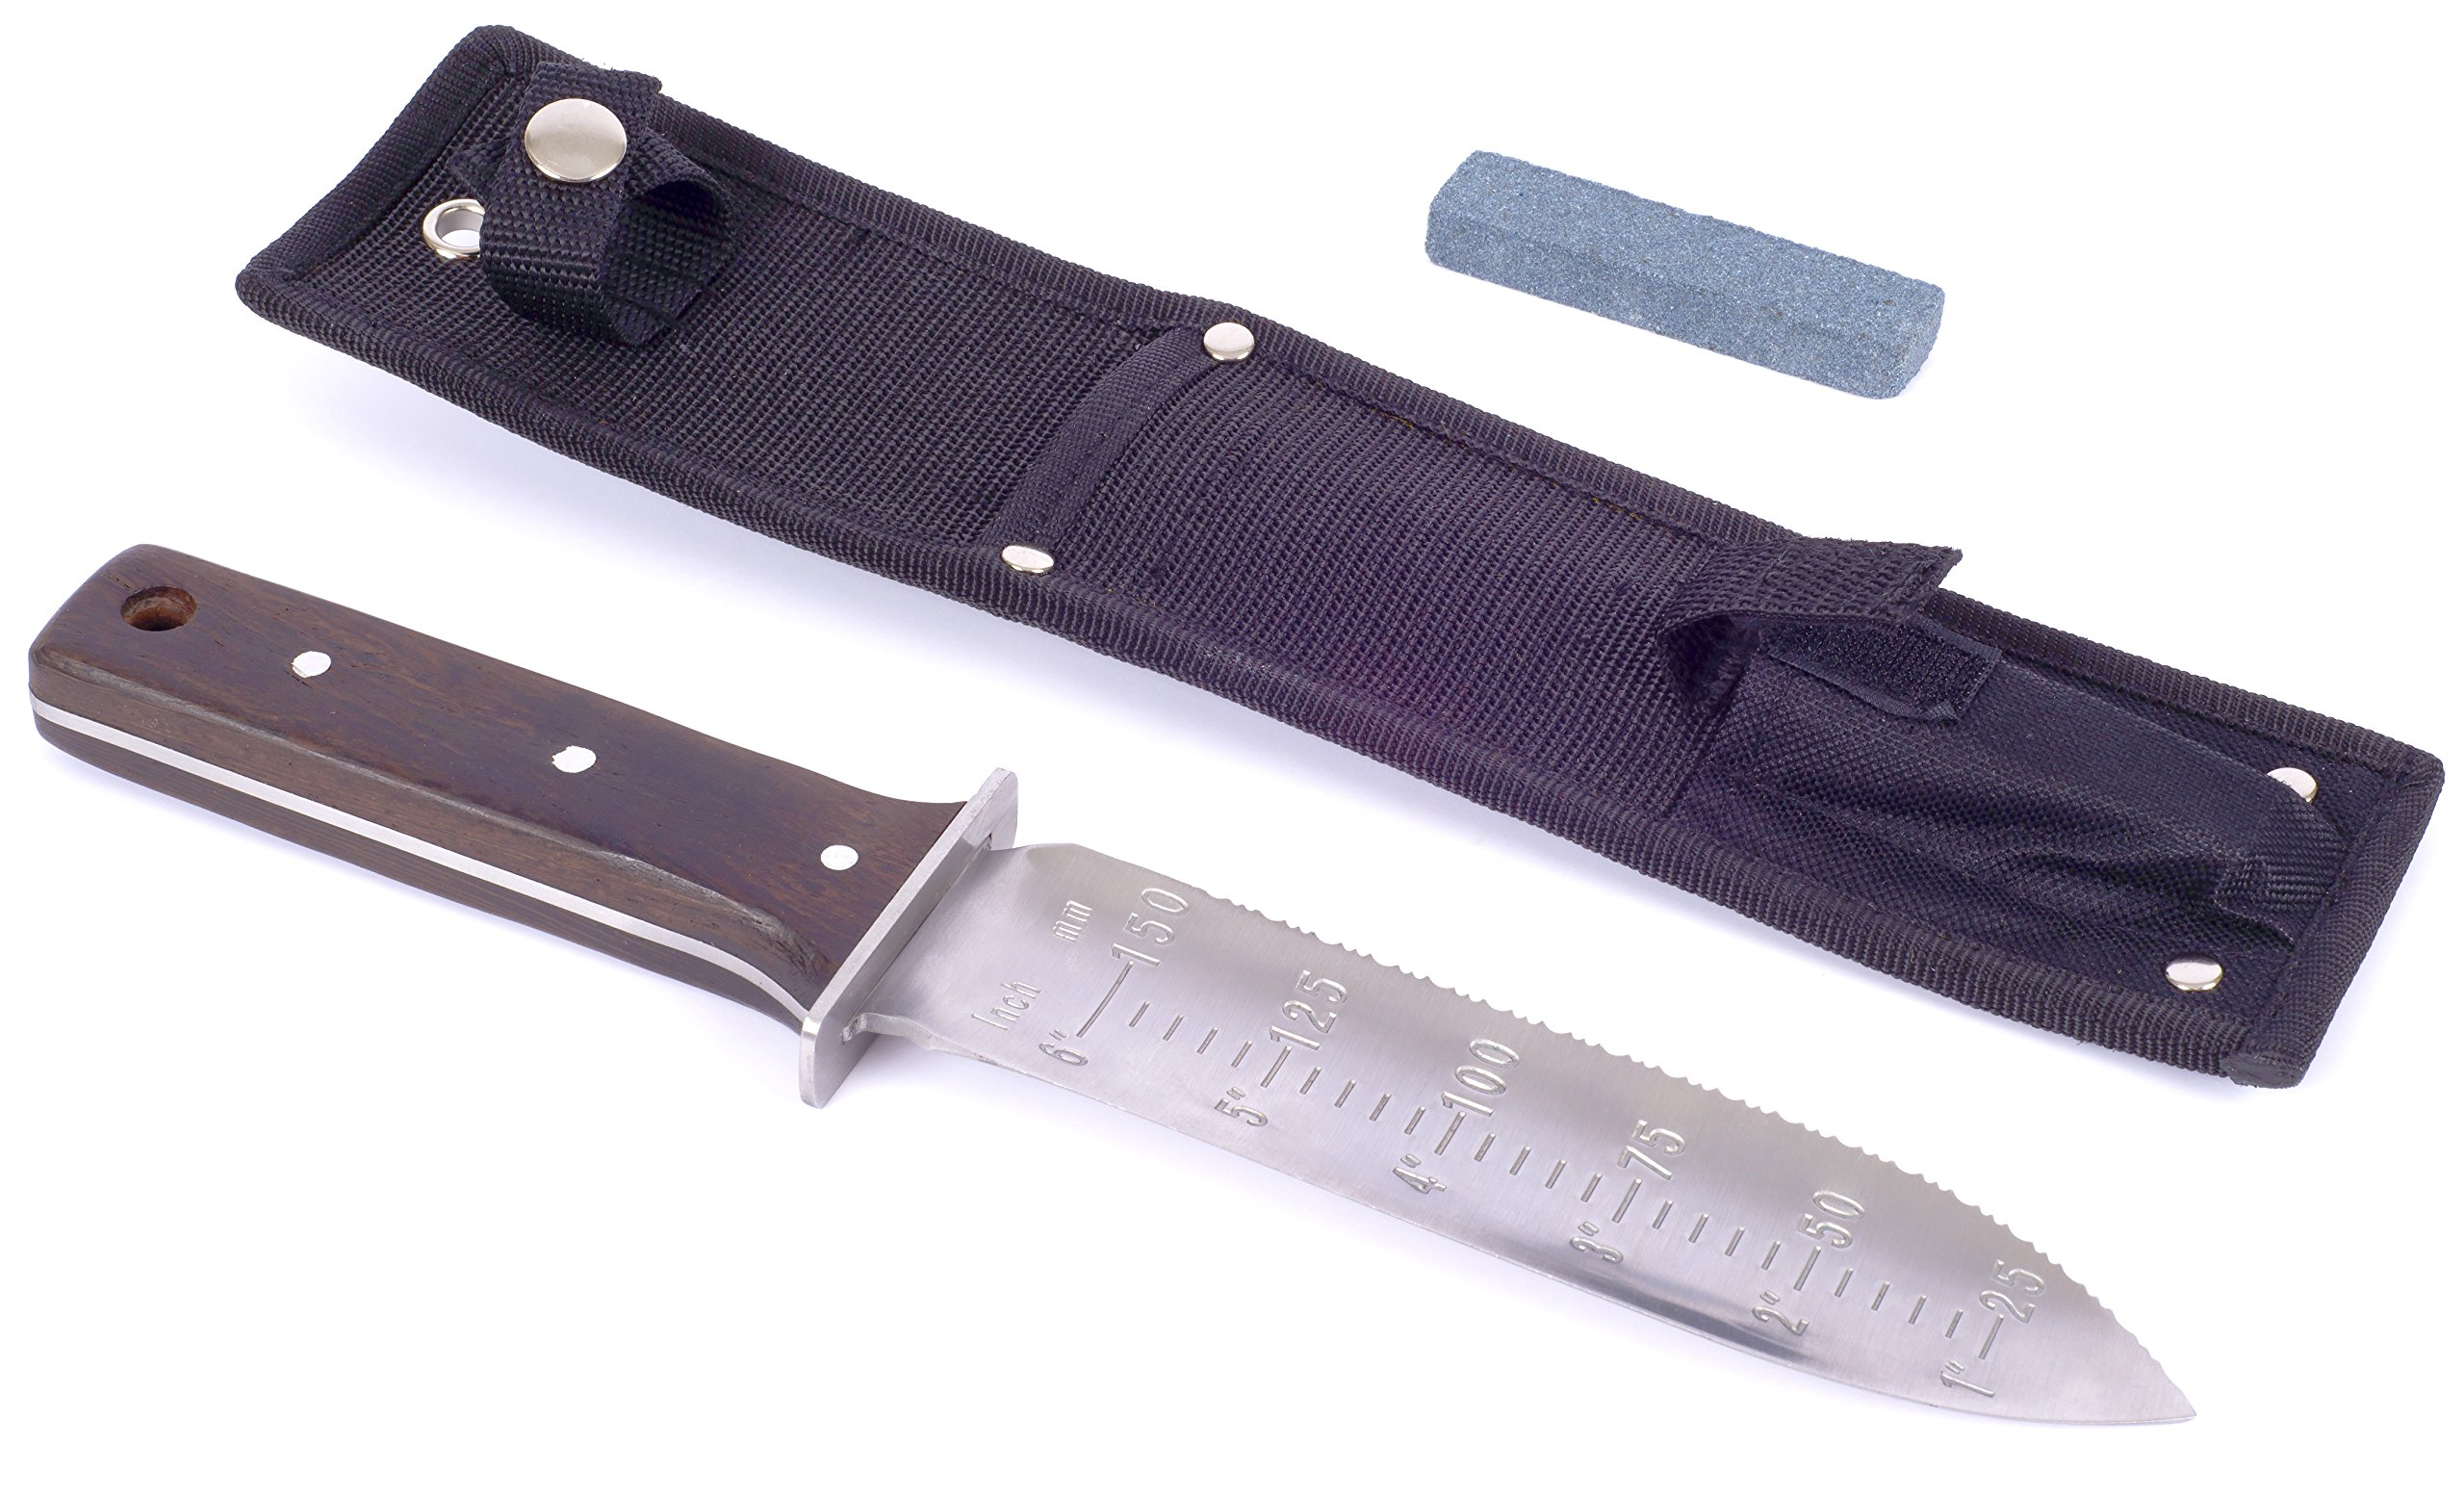 Secret Garden Japanese Hori Hori Knife All Purpose Garden Knife Landscaping Digging Tool With Stainless Steel Blade Sheath and wet stone sharpening tool (Large) by Secret Garden